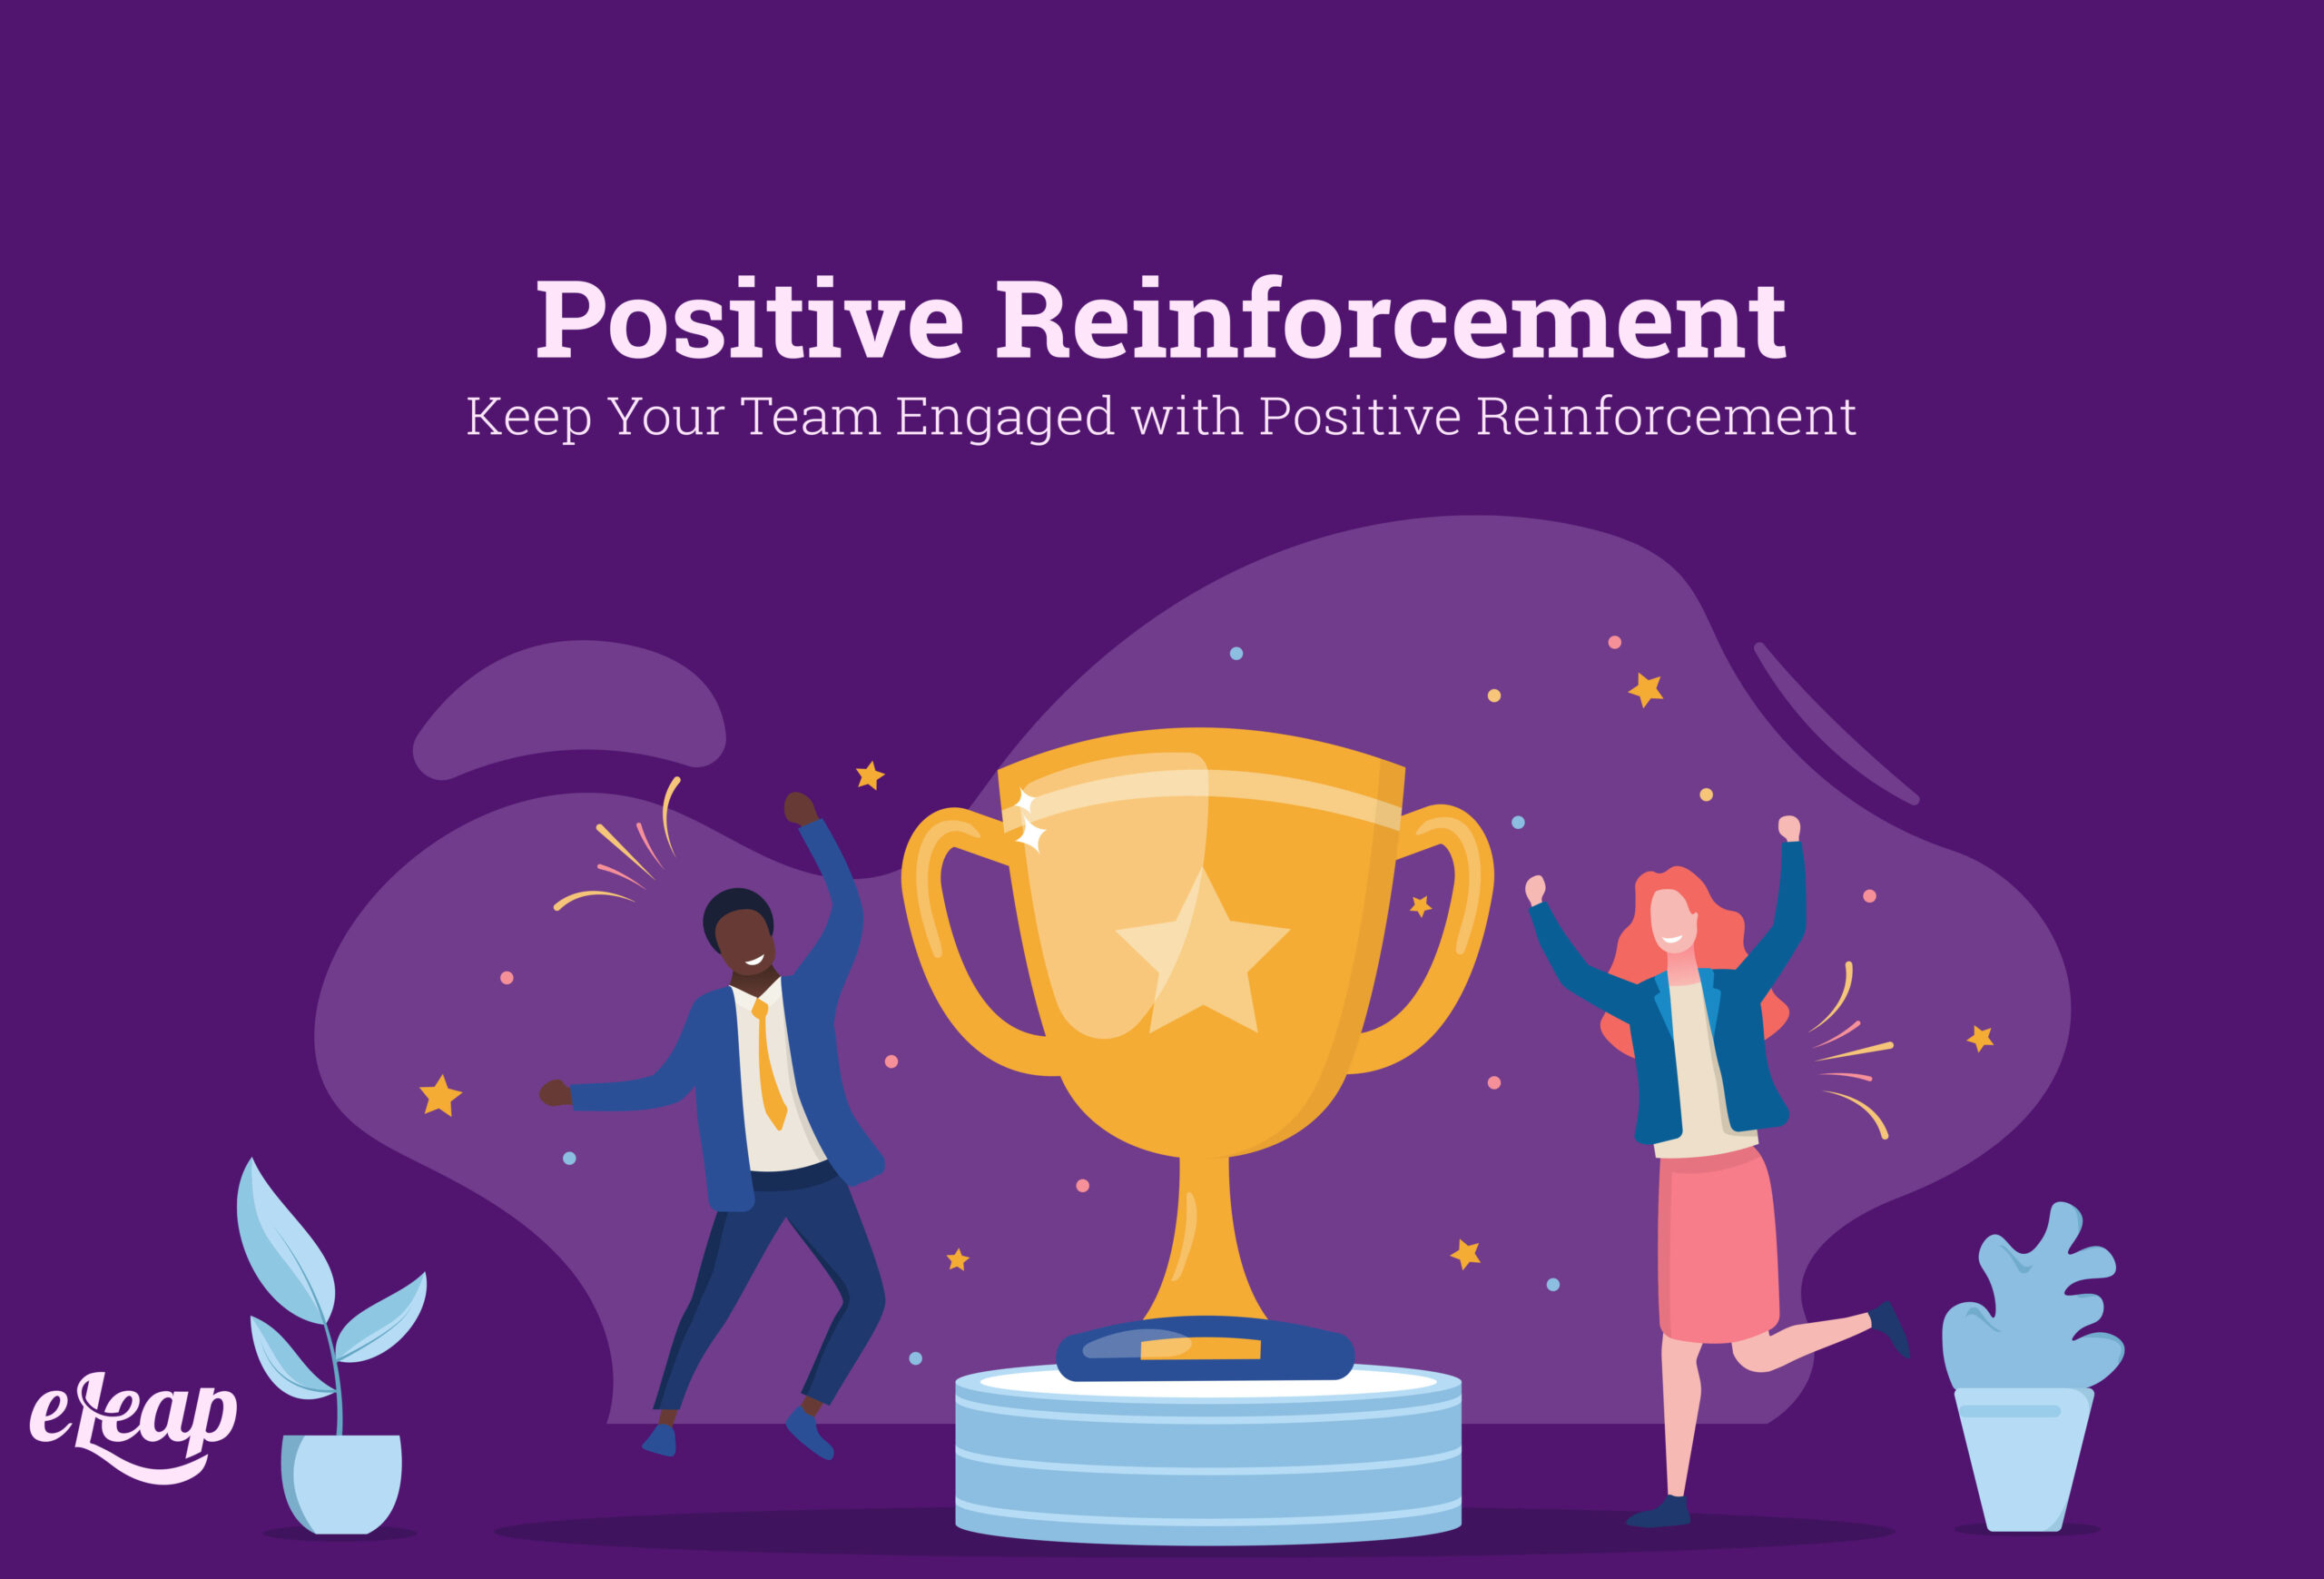 Keep Your Team Engaged with Positive Reinforcement